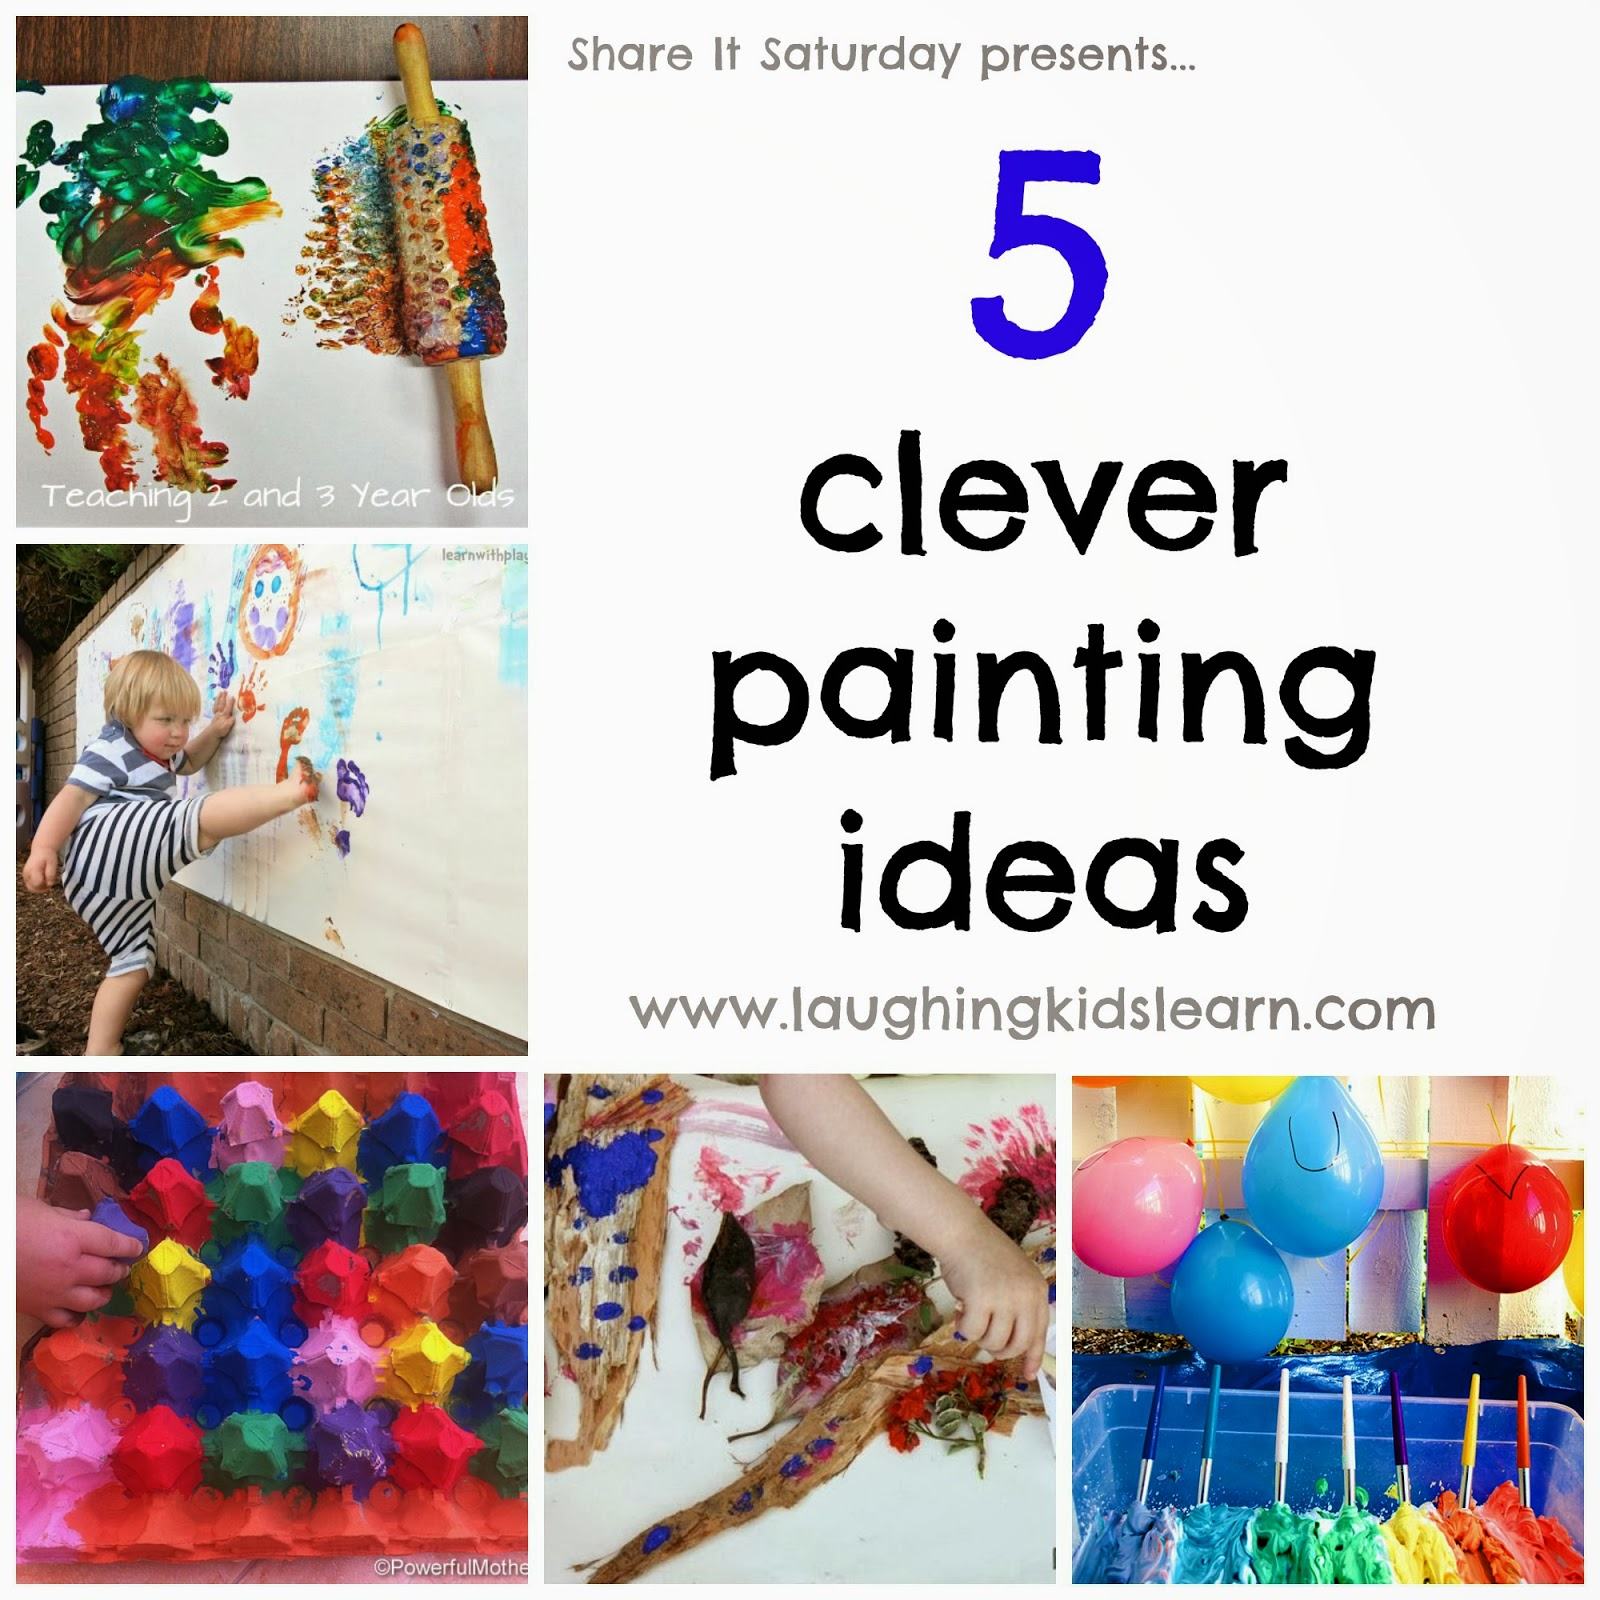 share it saturday 5 clever painting ideas presented by laughing kids learn - Painting Picture For Kids